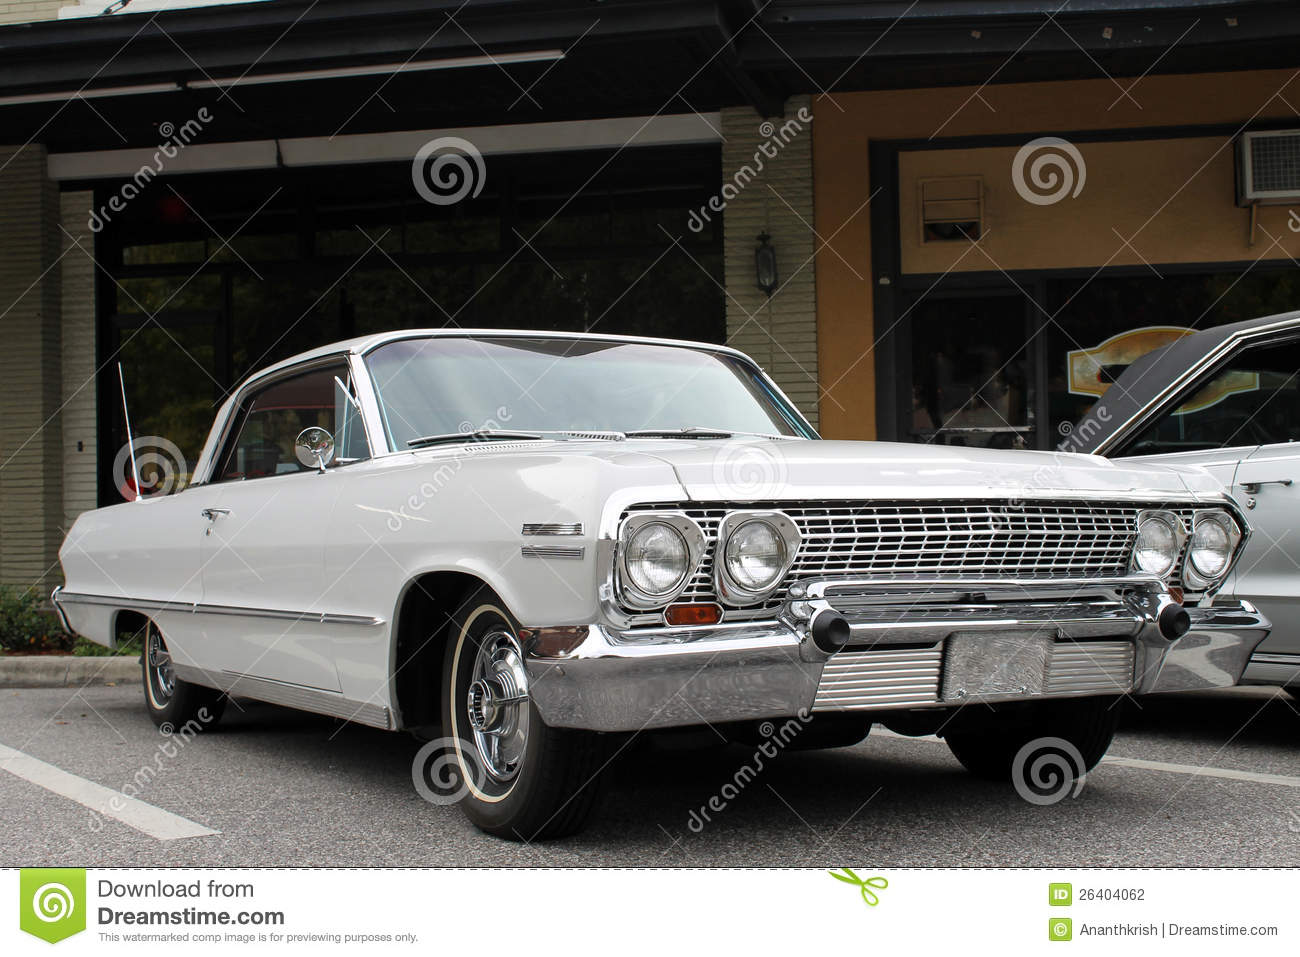 The old Chevrolet car stock photo. Image of coupe, company - 26404062